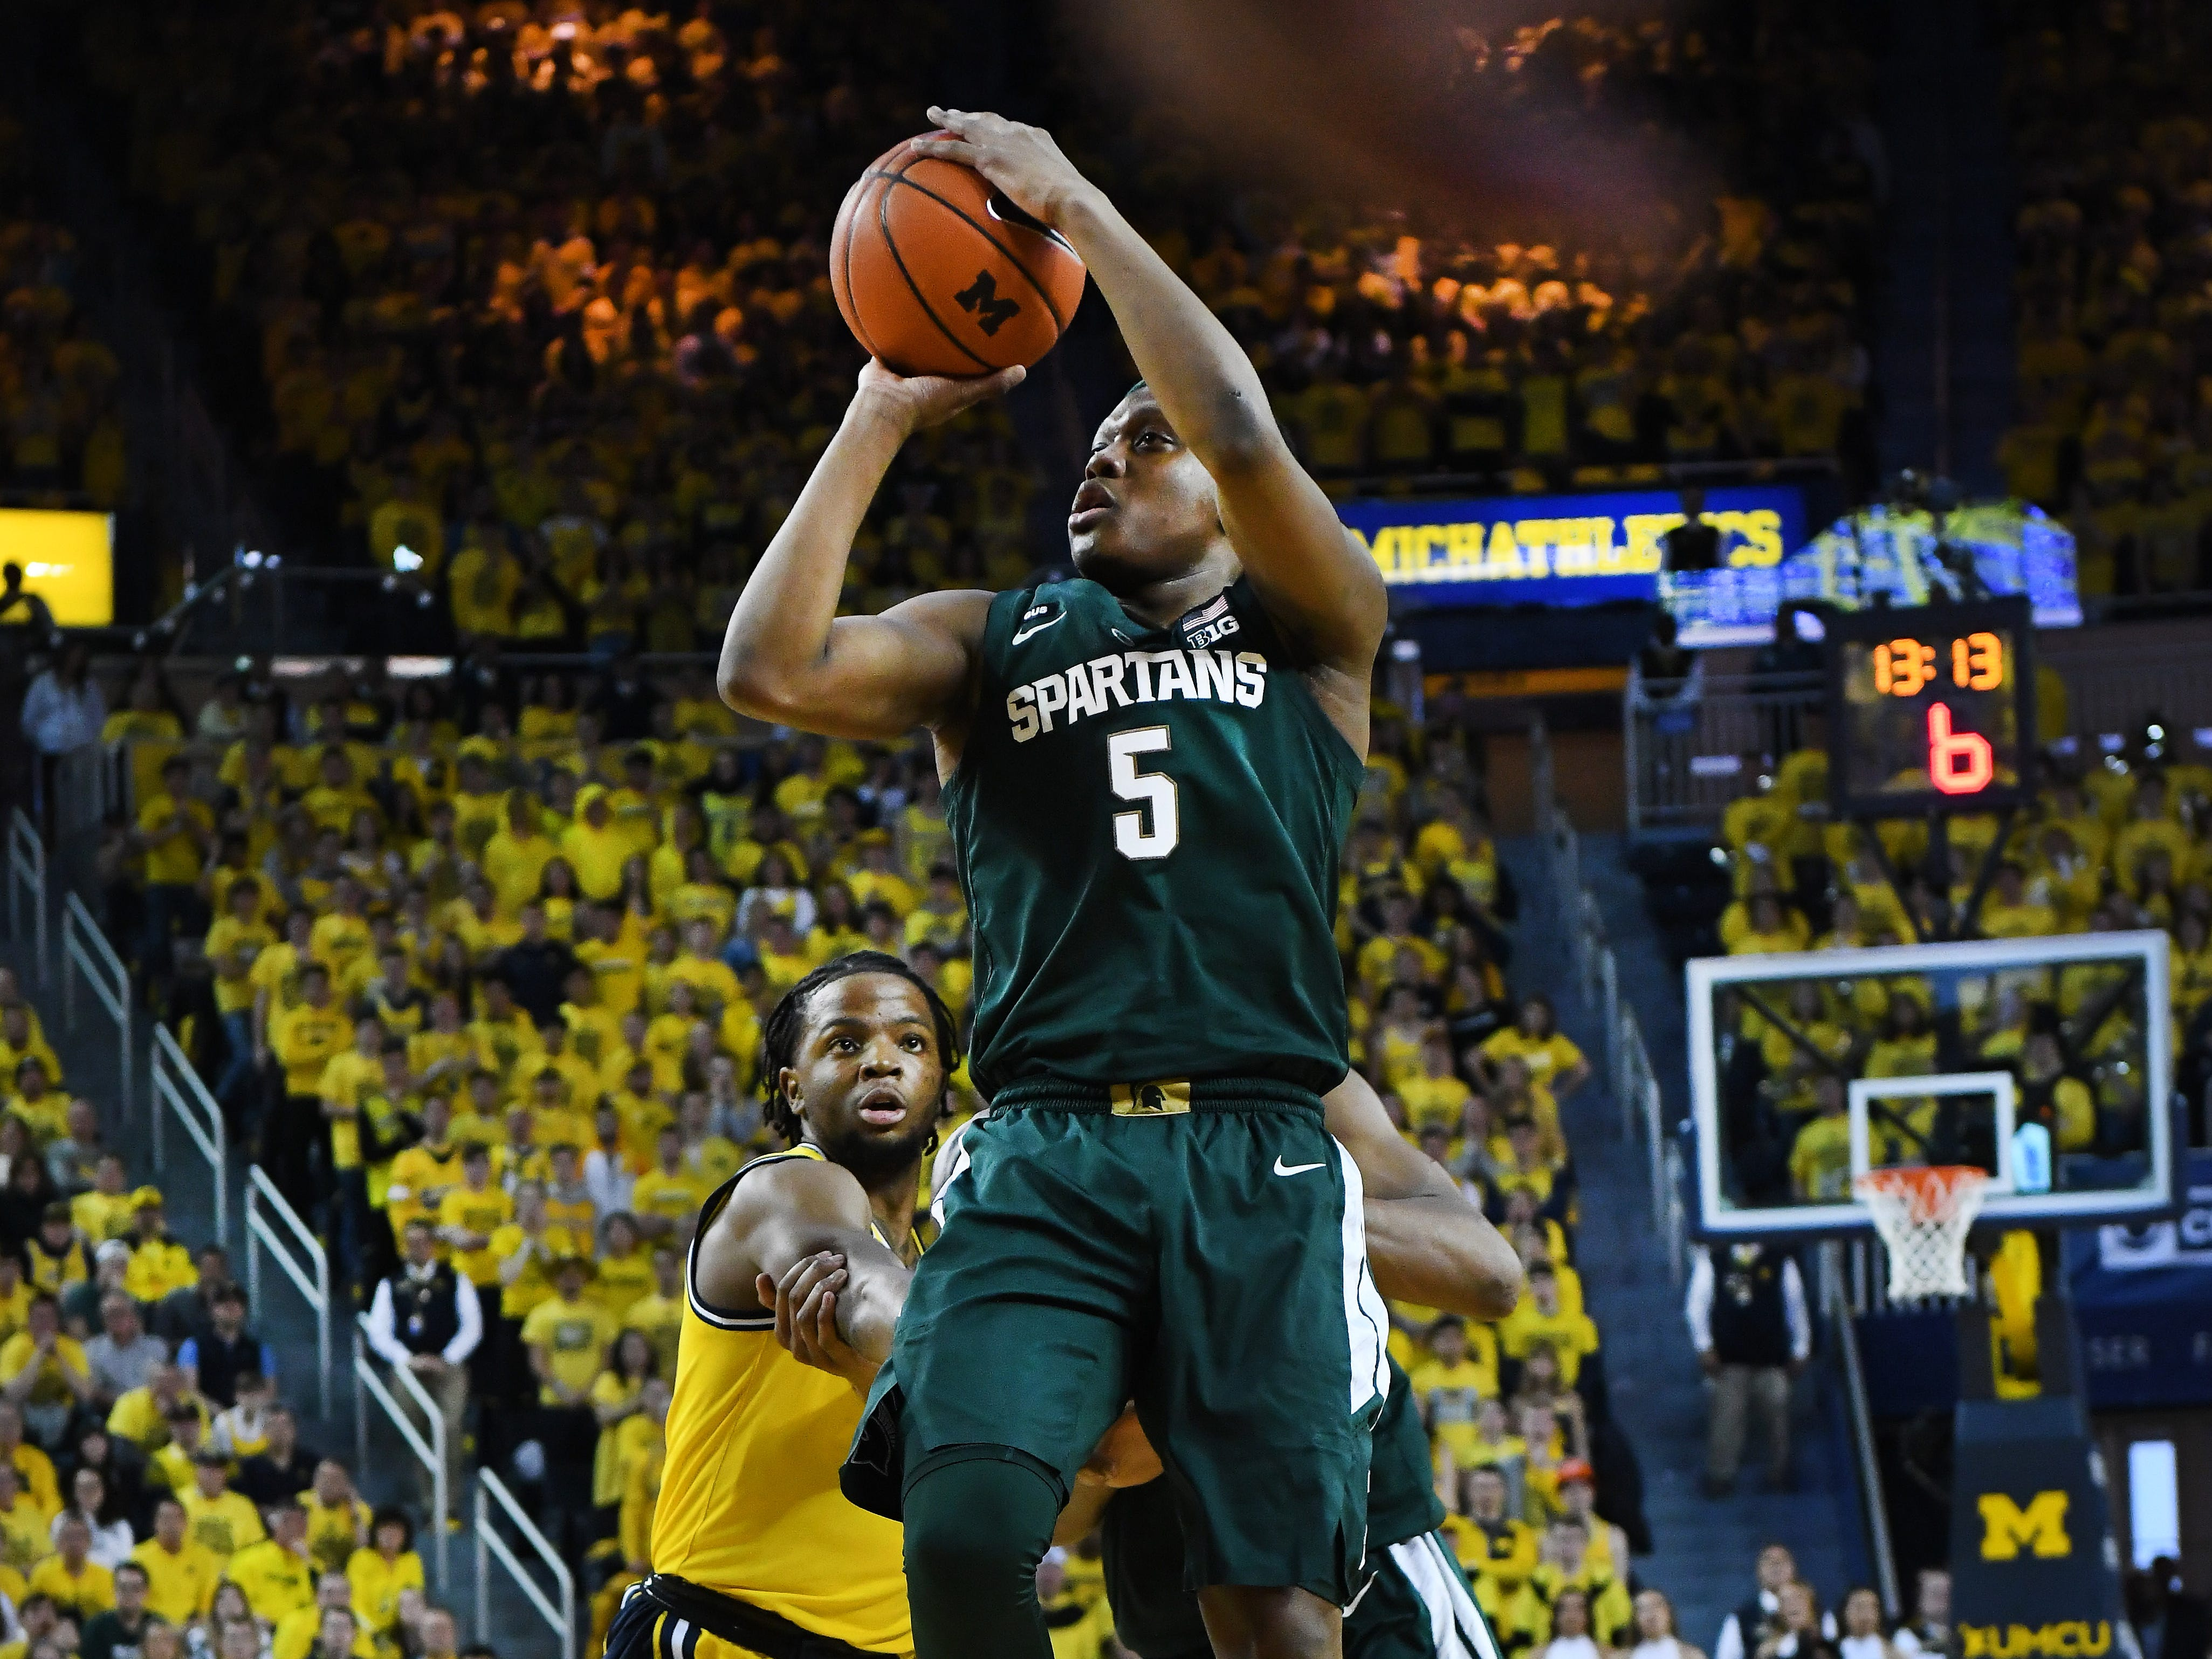 Michigan State's Cassius Winston puts up a shot in the first half.